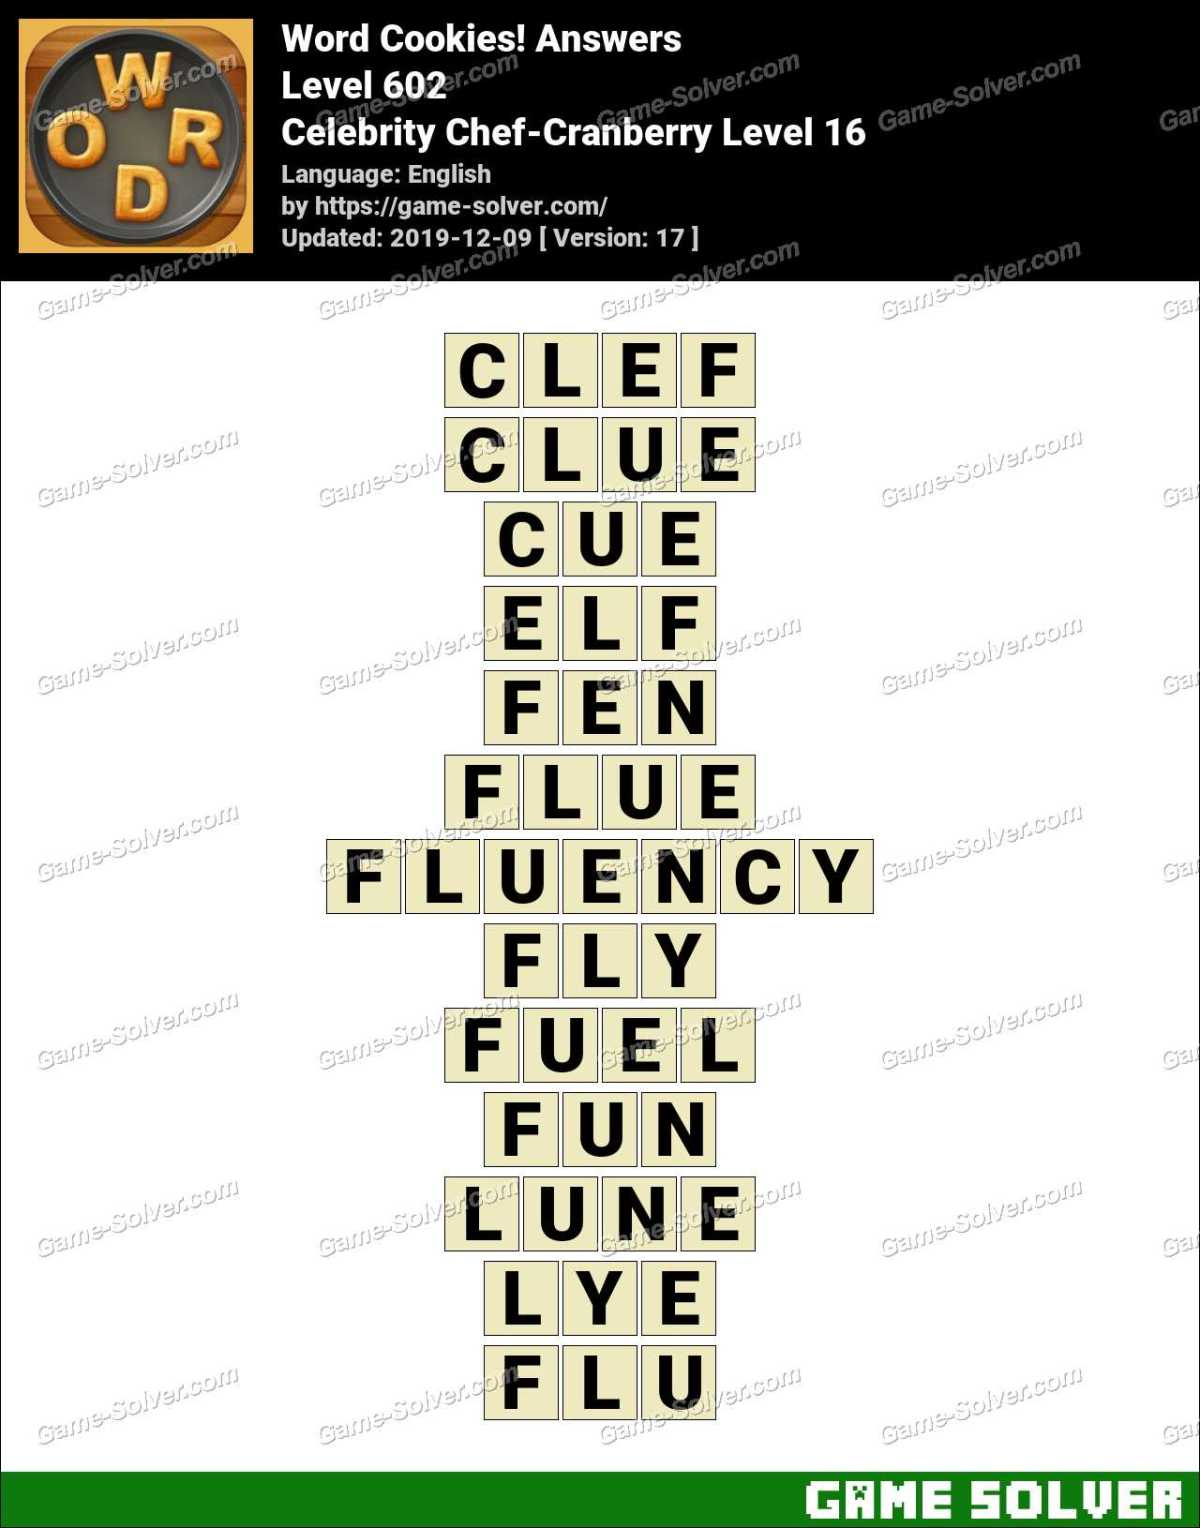 Word Cookies Celebrity Chef-Cranberry Level 16 Answers